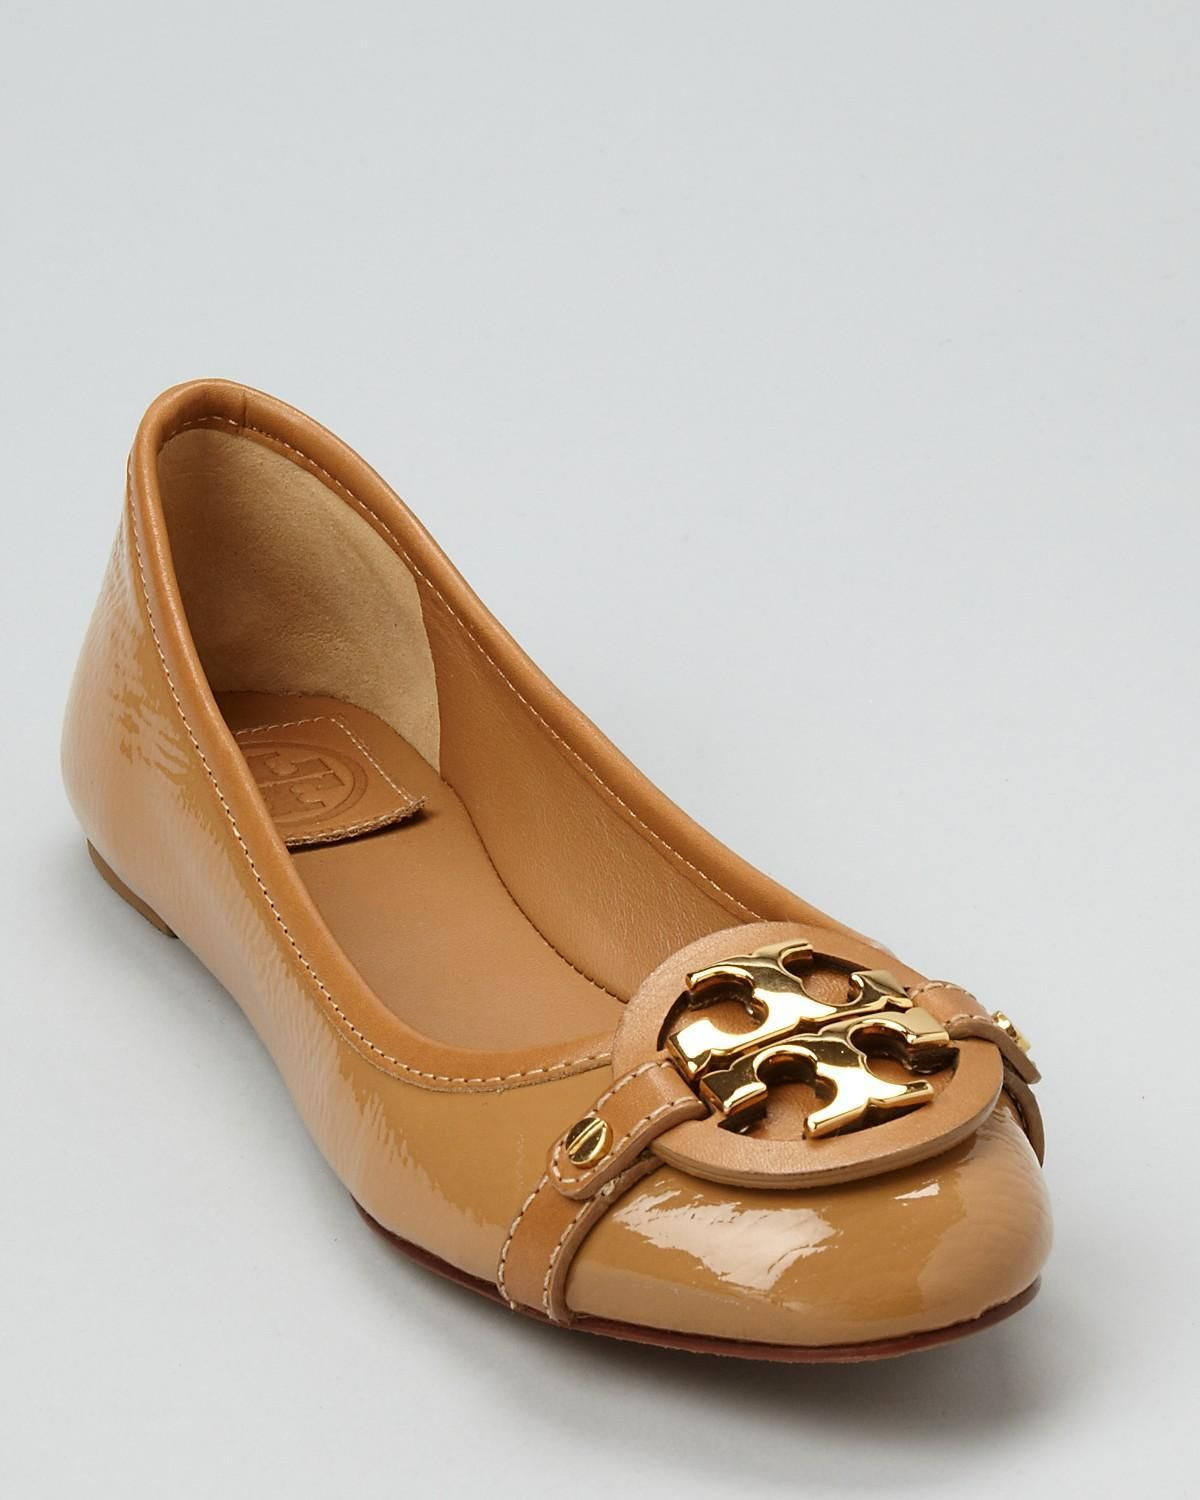 5f4b1529b2e1 Tory Burch Aaden Ballet Flats - love these  wouldn t they be perfect with a  navy blazer and jeans